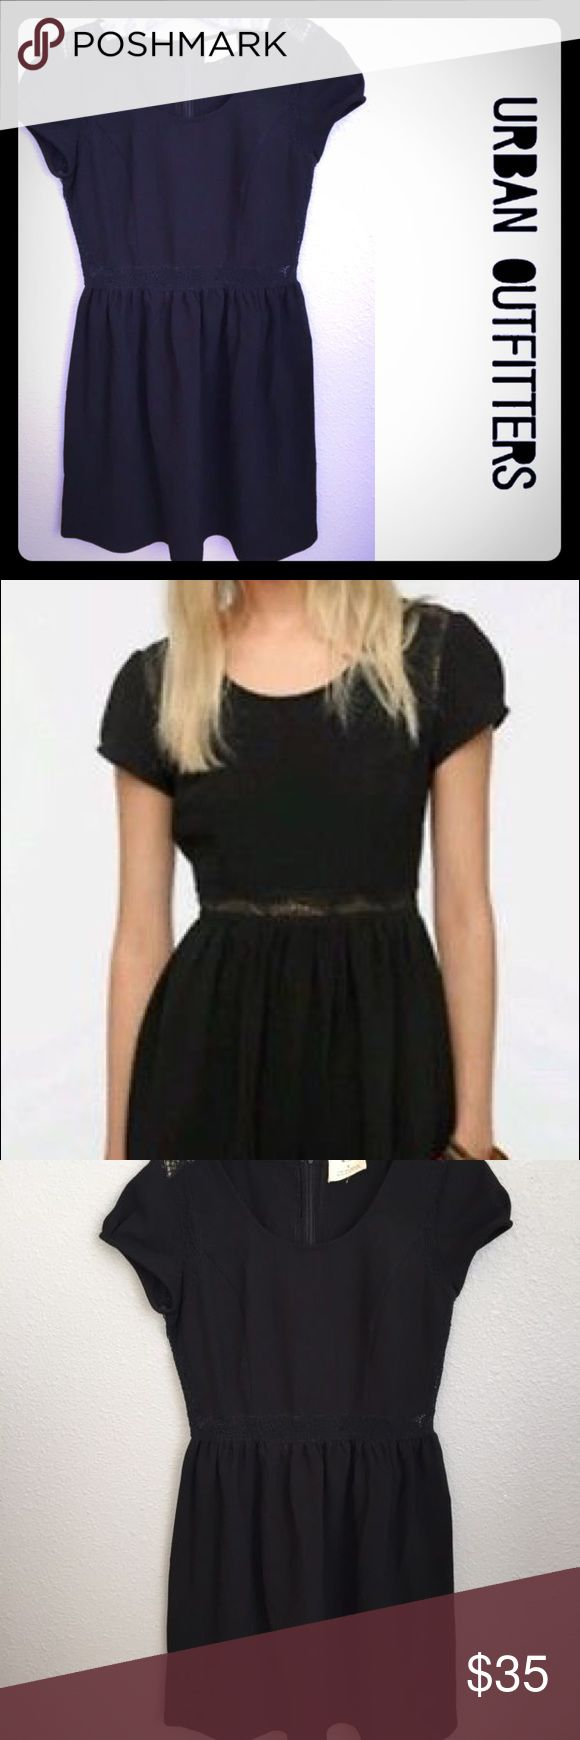 ⭐️24hr sale!!⭐️Urban Outfitters black dress Urban outfitters Pins and Needles women's black dress with lace detail. Super cute!!! The perfect little black dress!! Great to dress up for an event or a night out with your favorite man or your best girls!! Great condition!! Fast shipping!! Bundle and save!! 20% off bundles of 2 or more! Urban Outfitters Dresses Mini